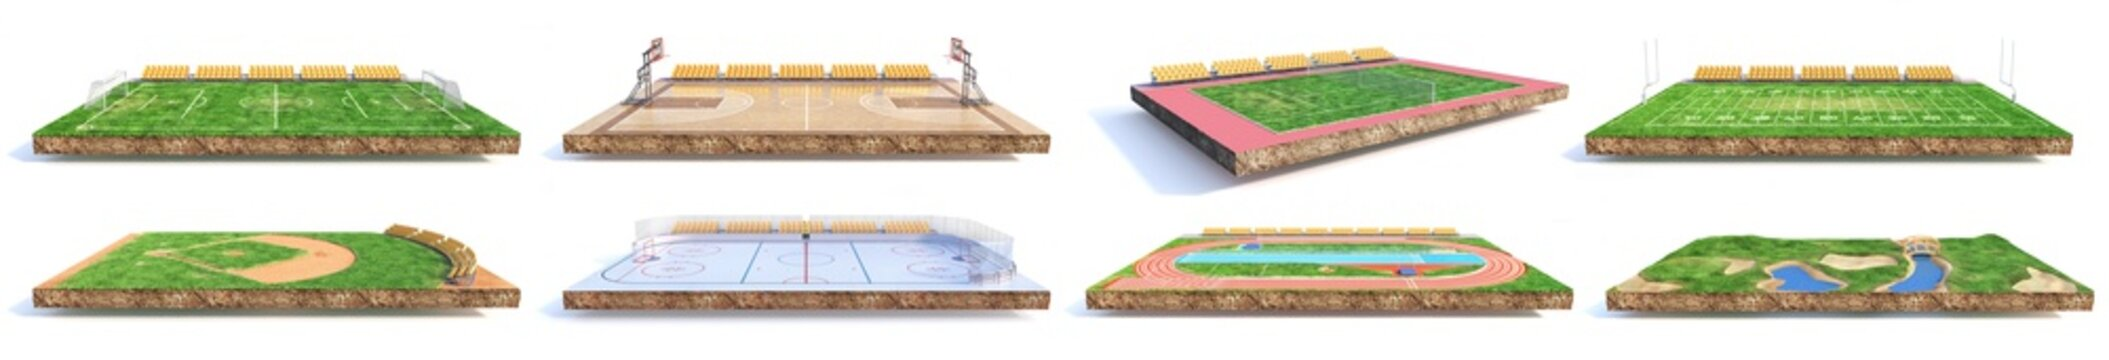 Sport concept. Set of different sports fields on a piece of ground isolation on a white background. 3d illustration